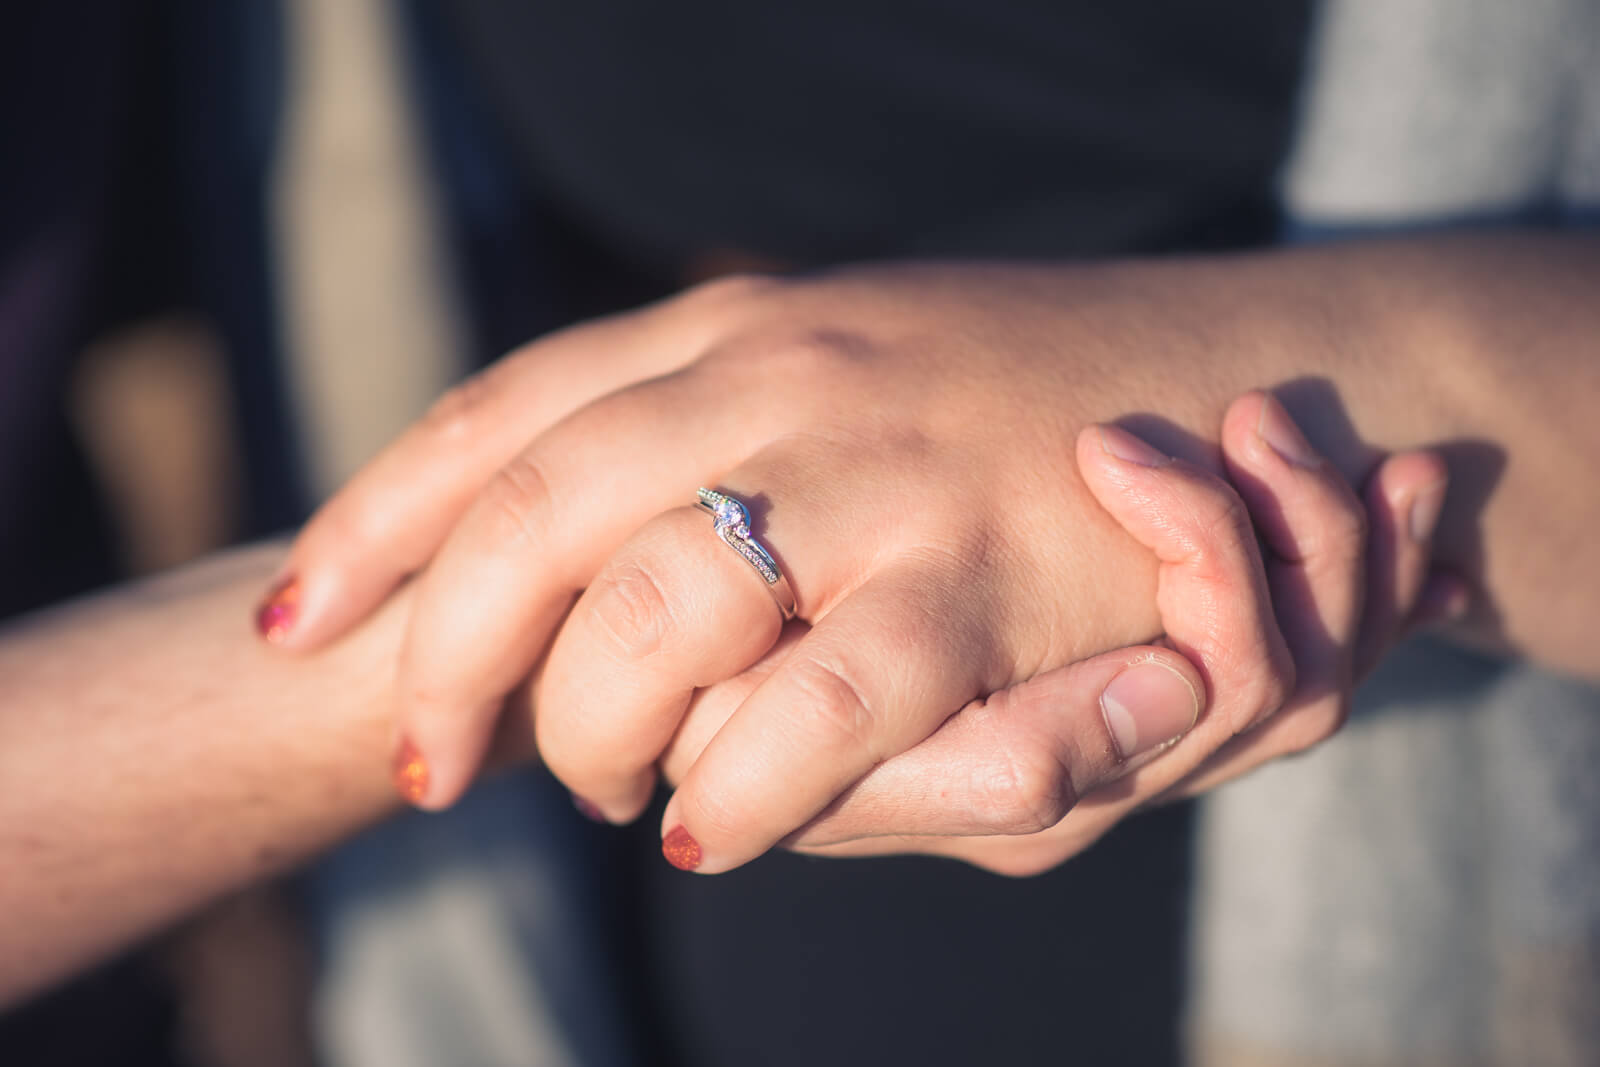 Young couple's hands with engagement ring